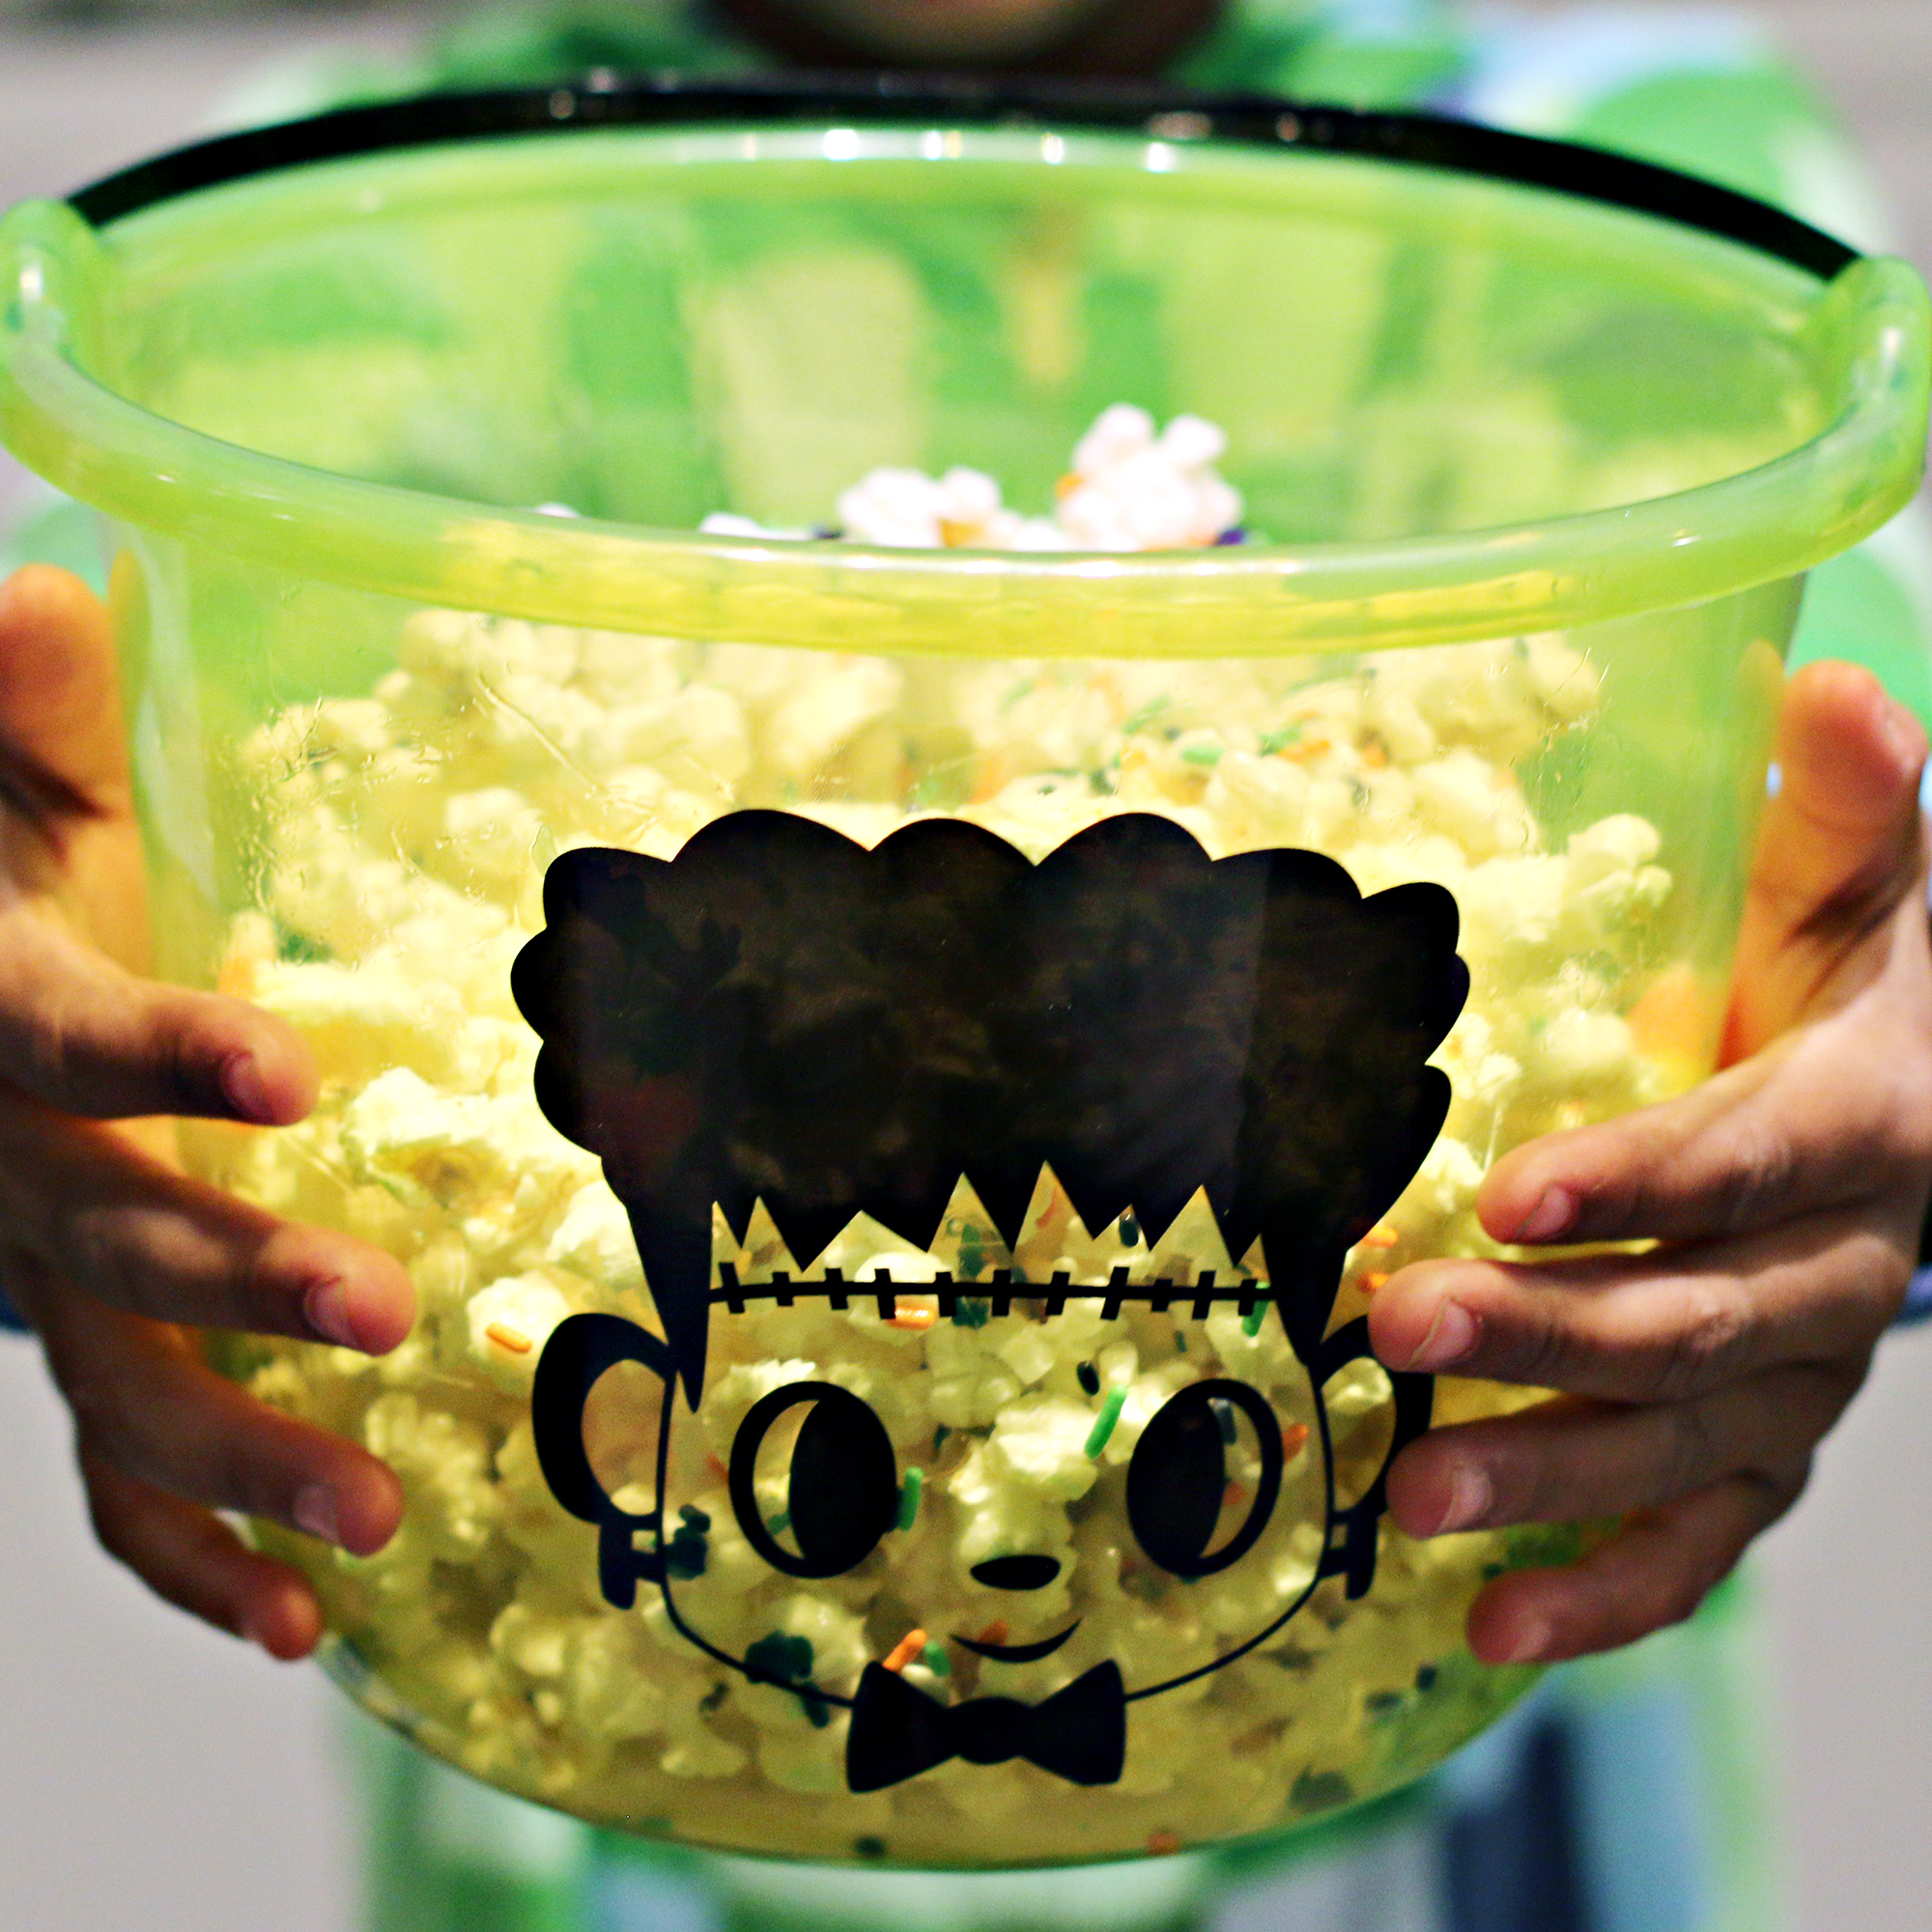 Child holding a Halloween bucket with Frankenstein on it Filled with Monster Mash popcorn treat.